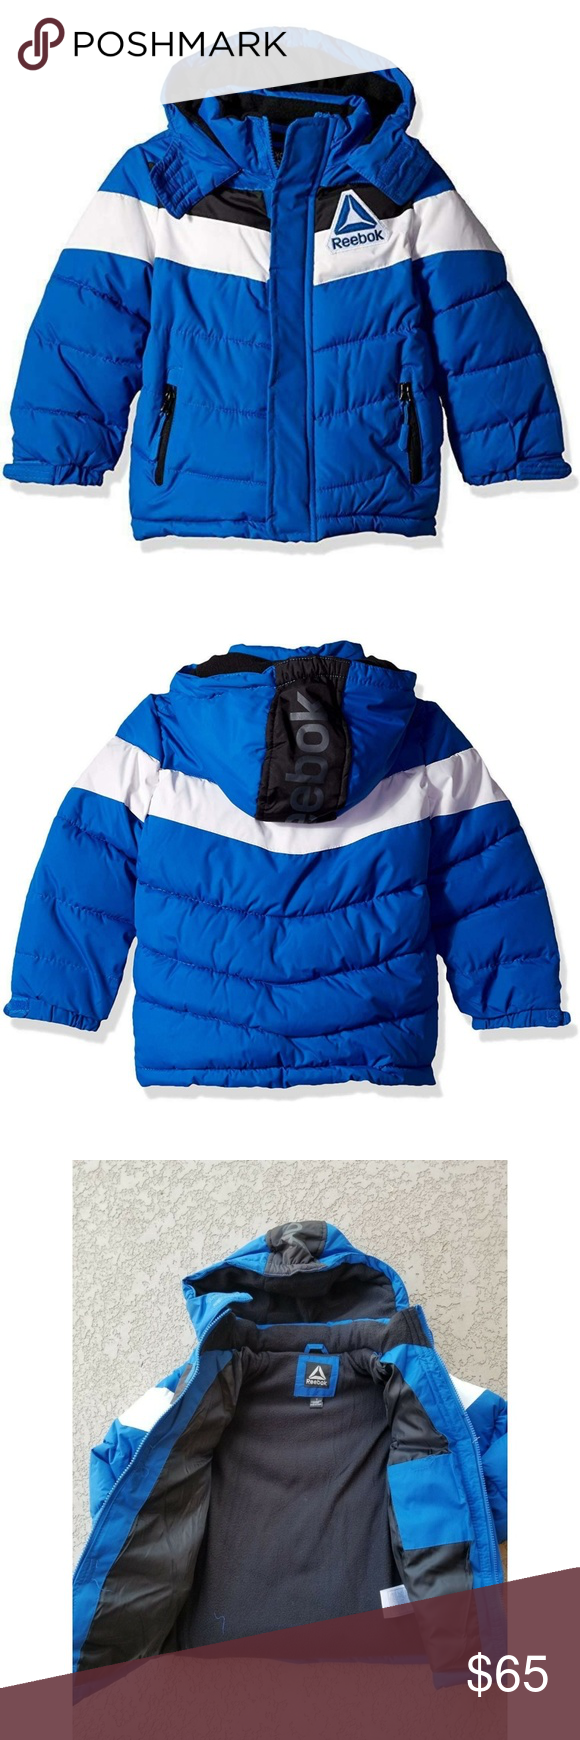 Reebok Boys Active Hooded Snow Jacket Blue Size 7 Brand New With Tag Reebok Boys Winter Puffer Jacket In Blue And White Fashion Clothes Design Fashion Trends [ 1740 x 580 Pixel ]